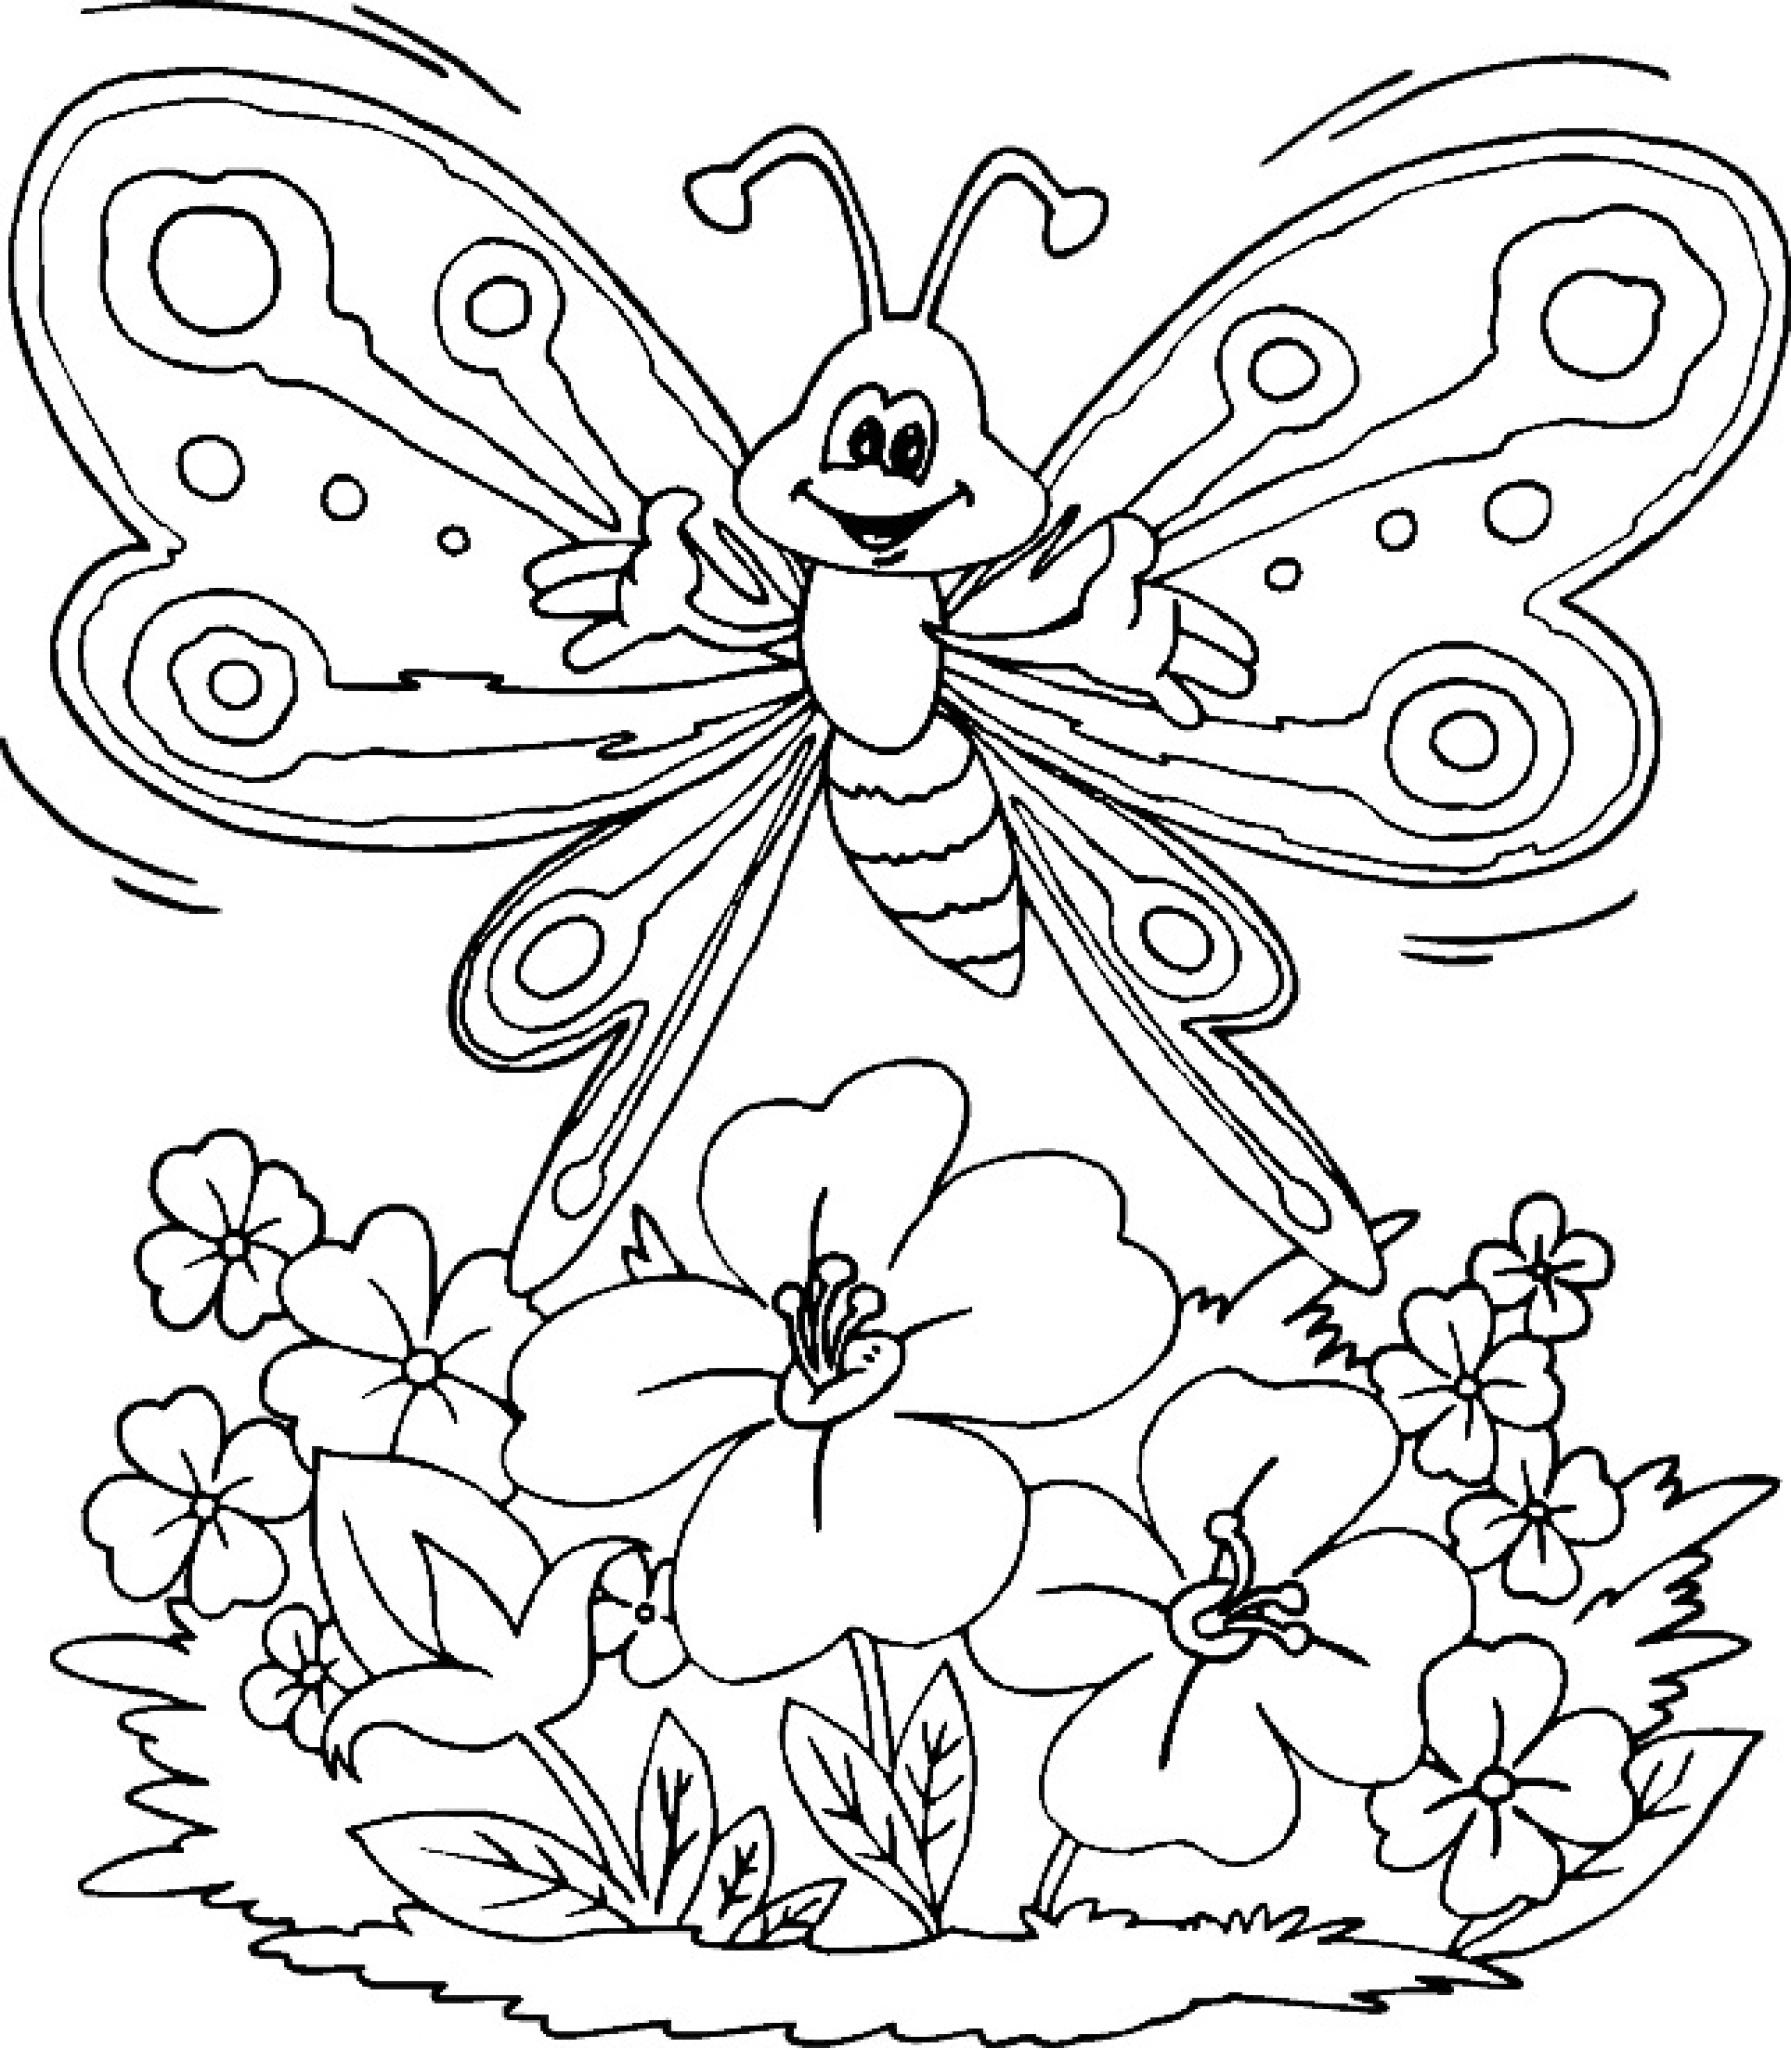 professional coloring pages flowers - photo#4